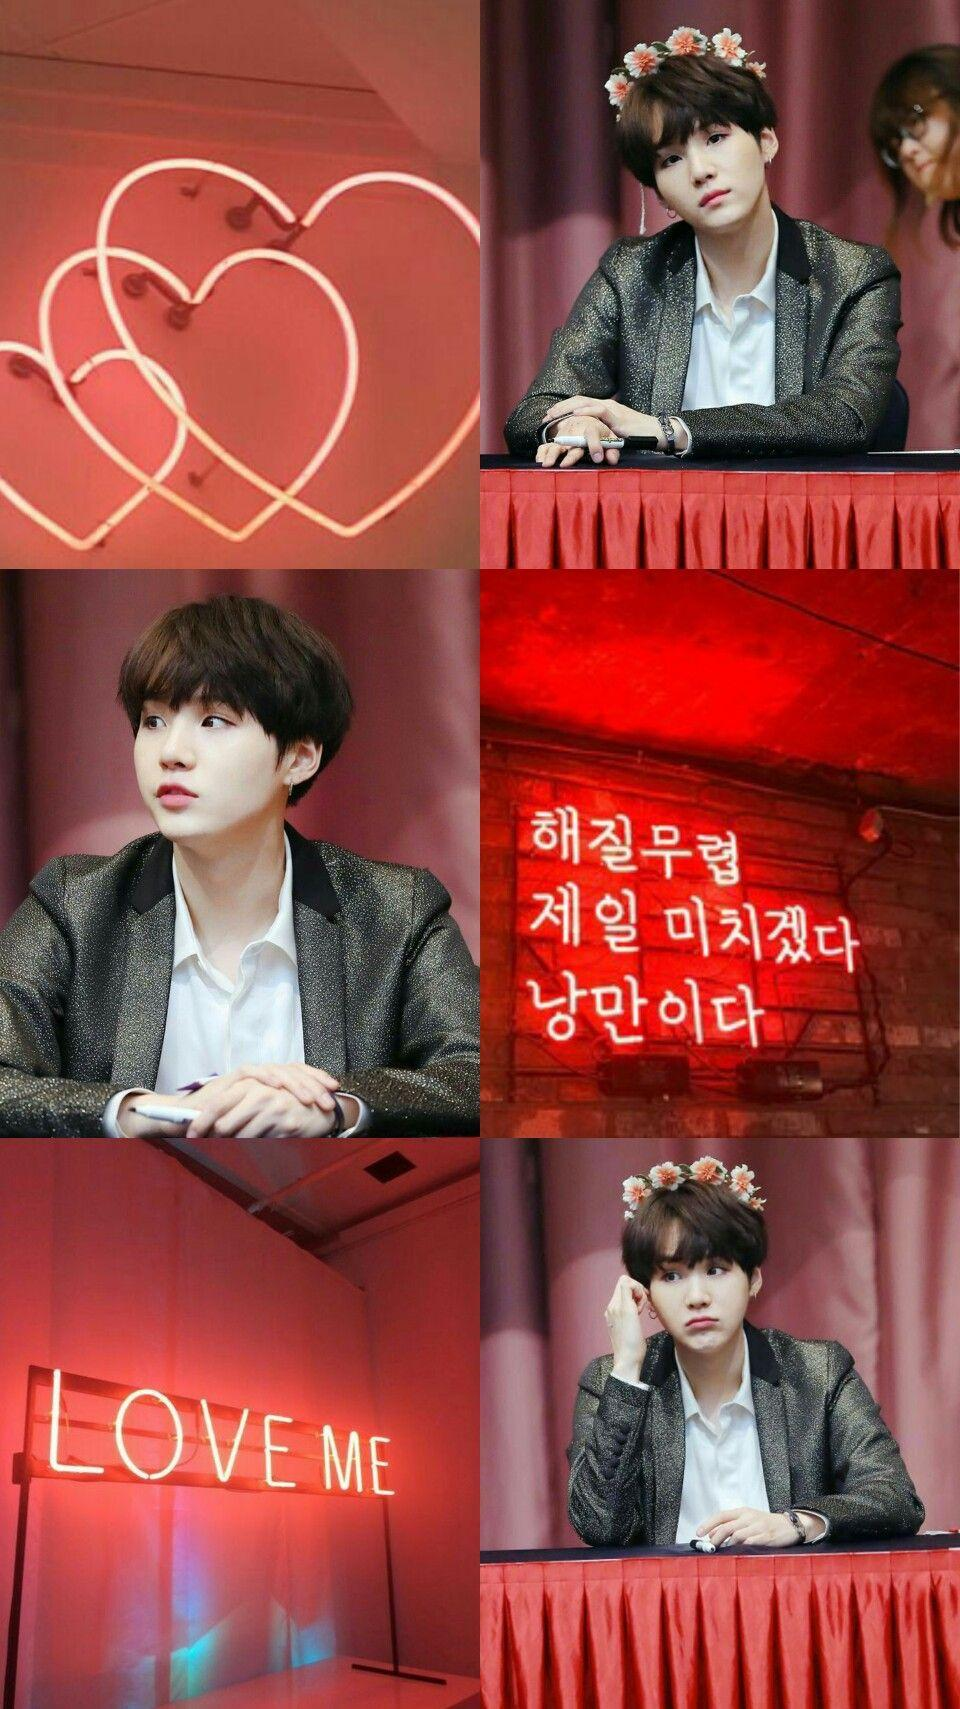 BTS Red Aesthetic Wallpapers - Wallpaper Cave